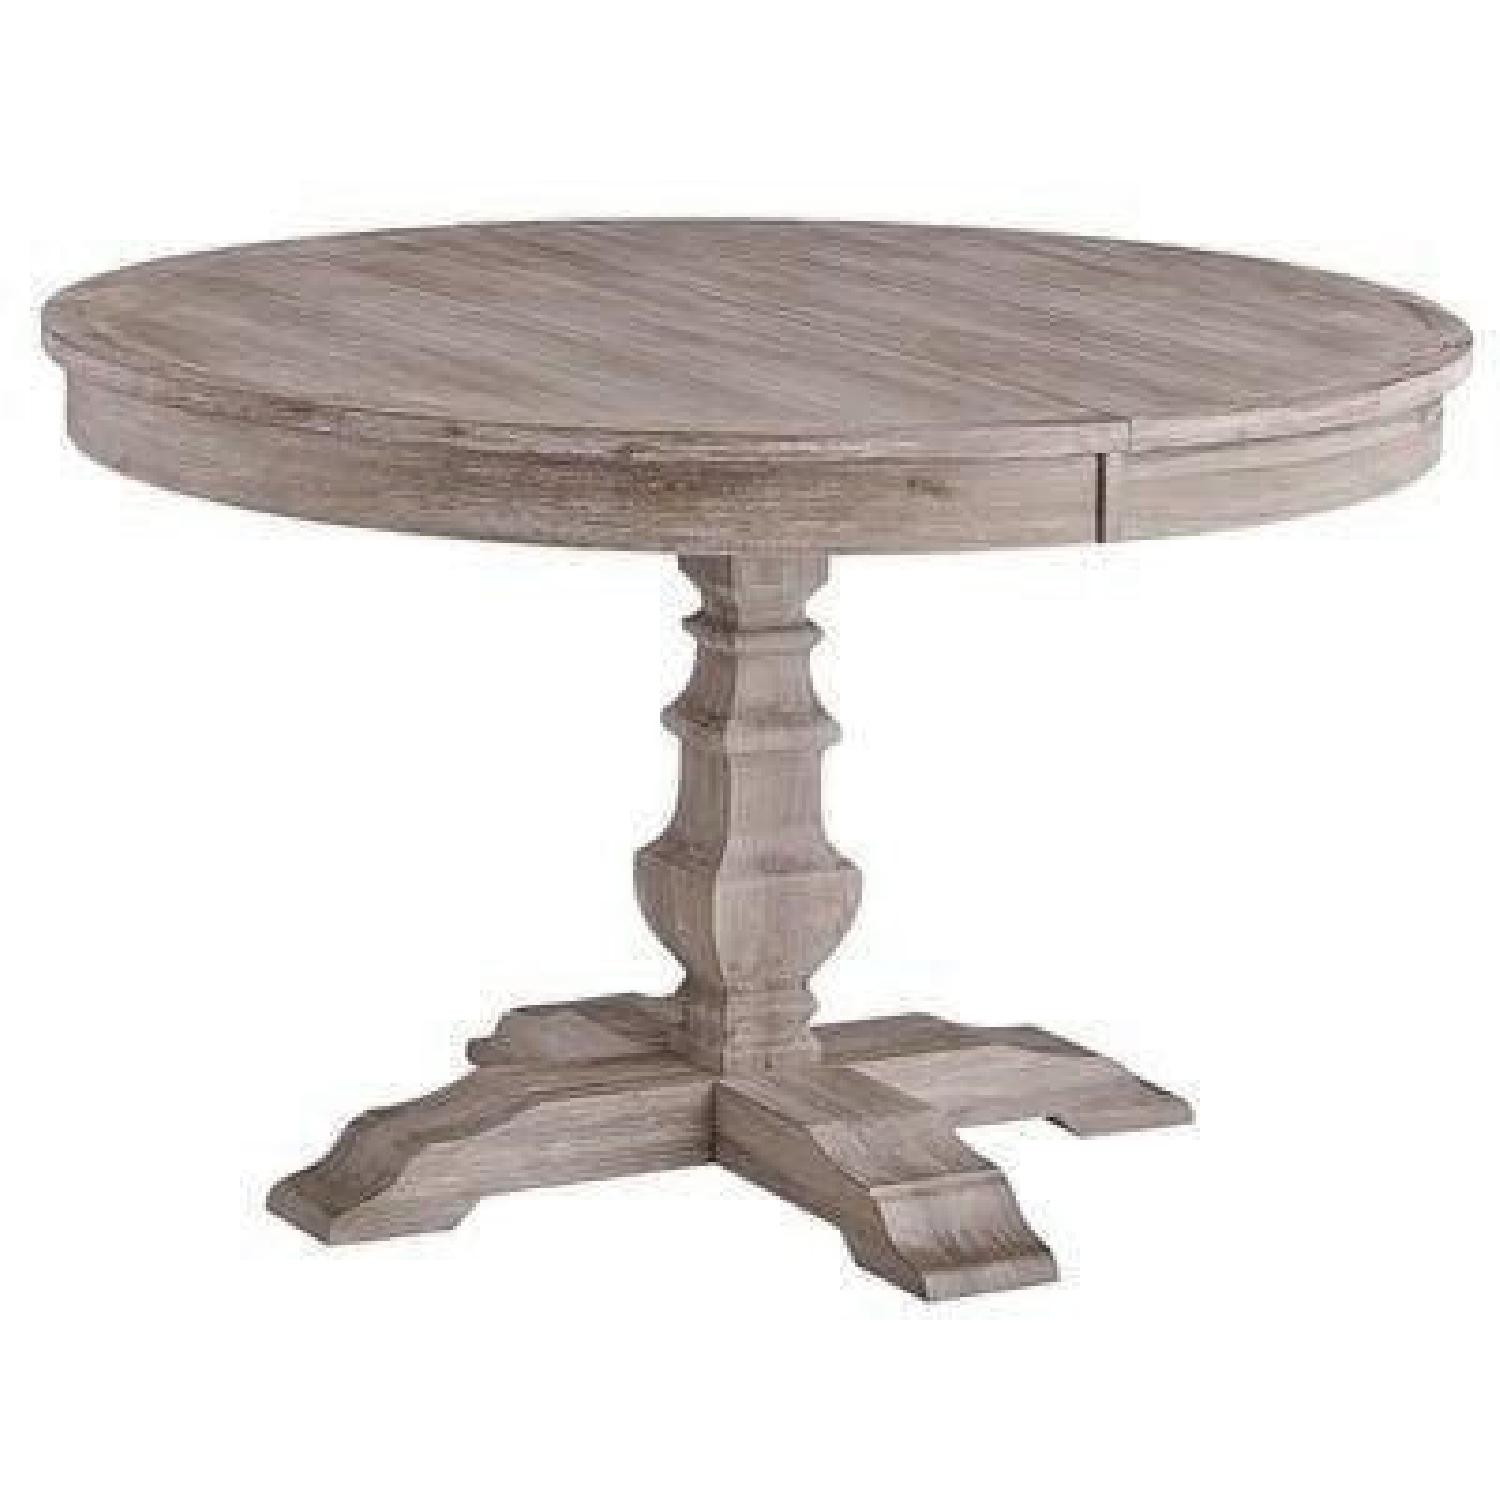 Pier 1 Bradding Expandable Round/Oval Dining Table